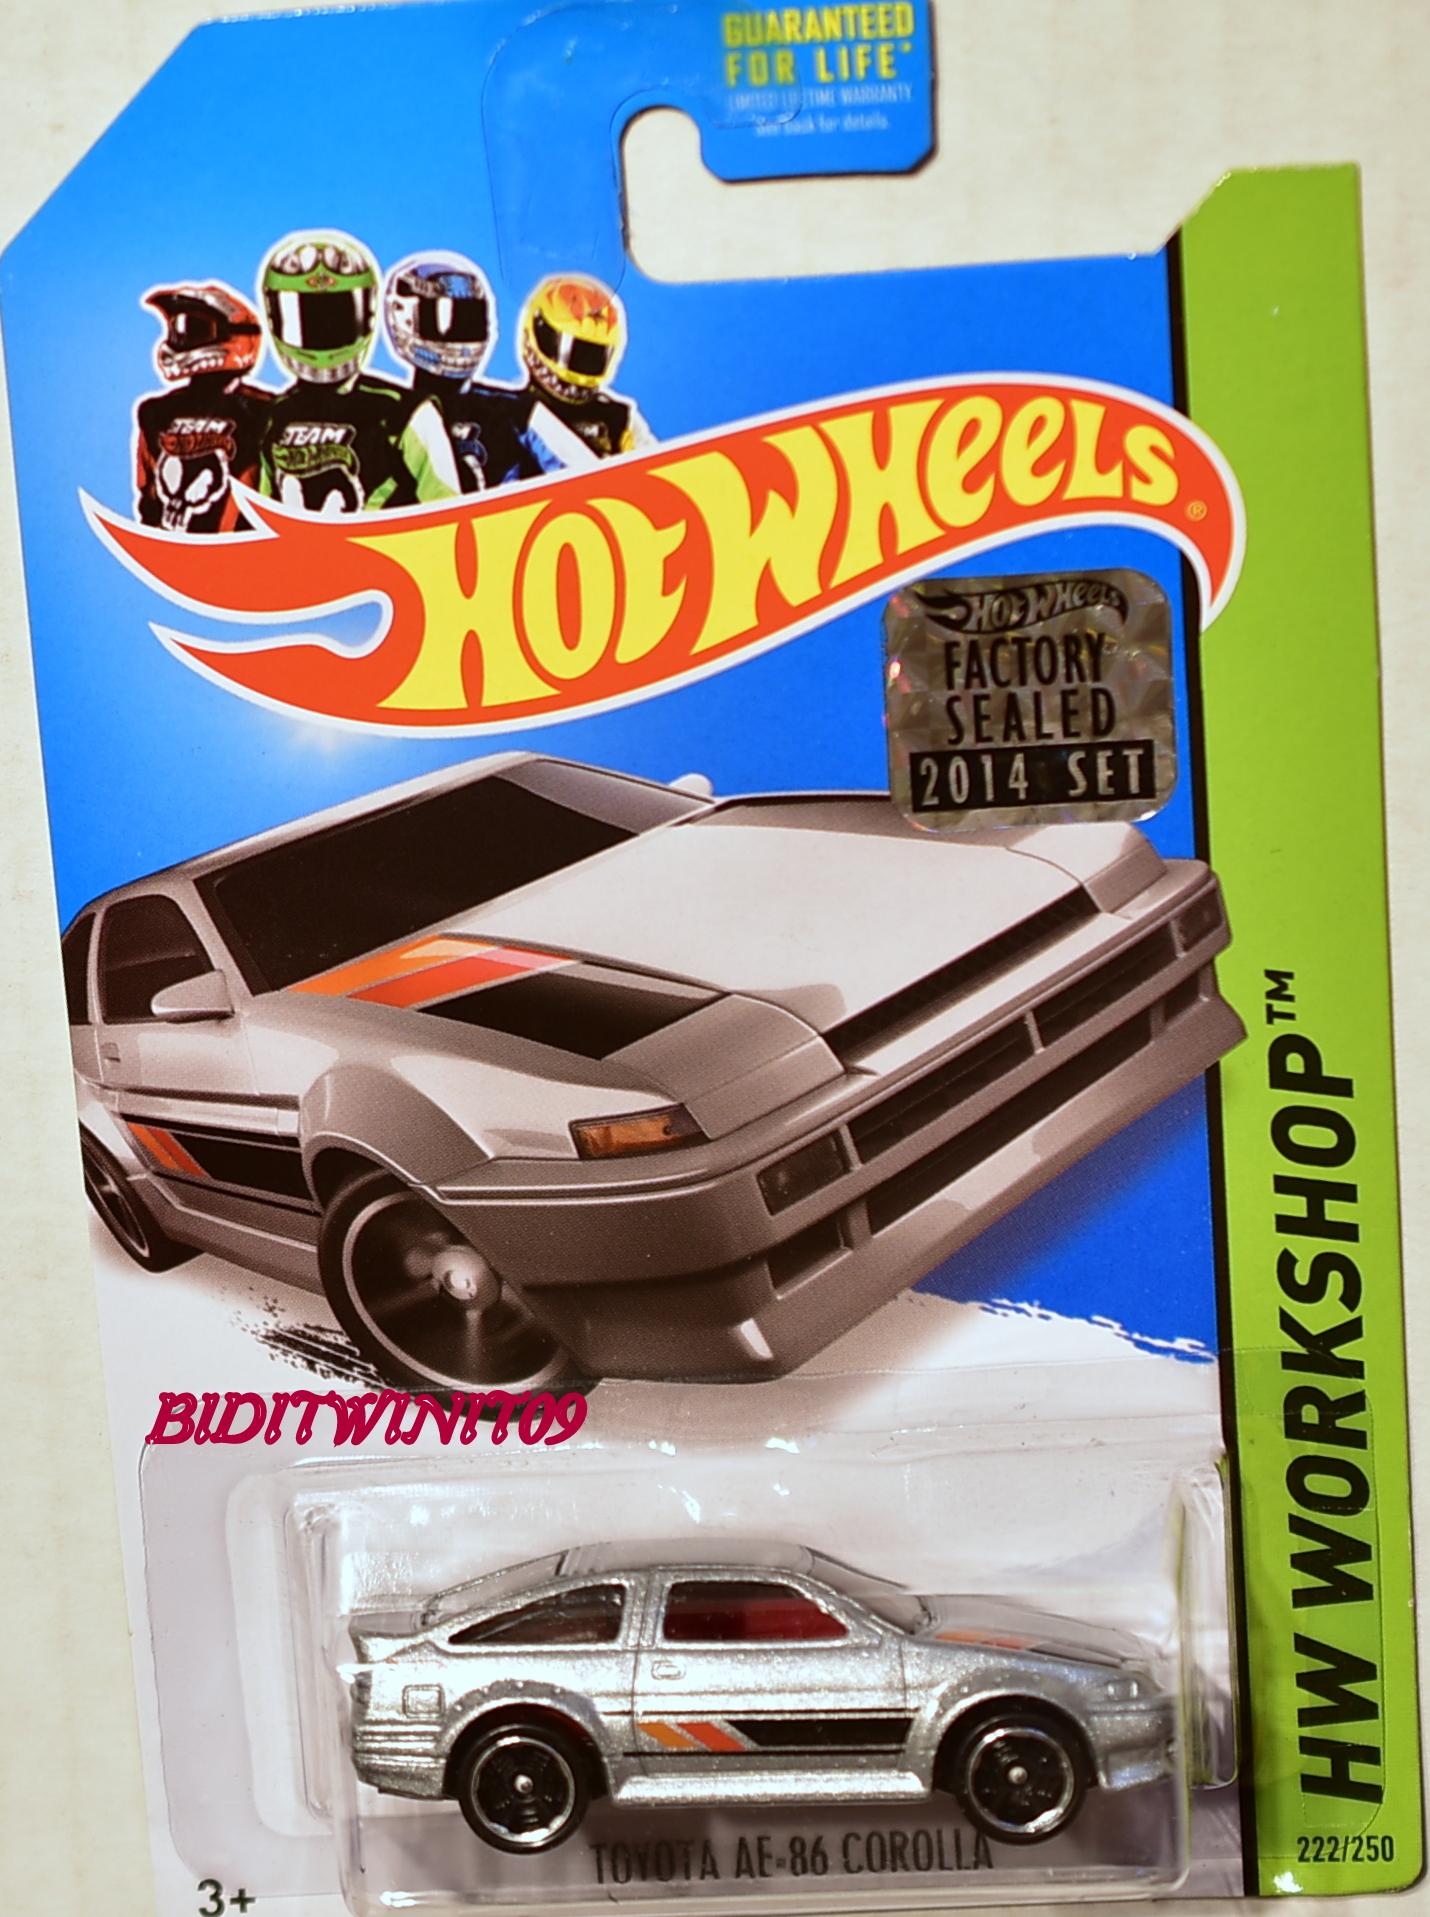 HOT WHEELS 2014 HW WORKSHOP TOYOTA AE-86 COROLLA FACTORY SEALED